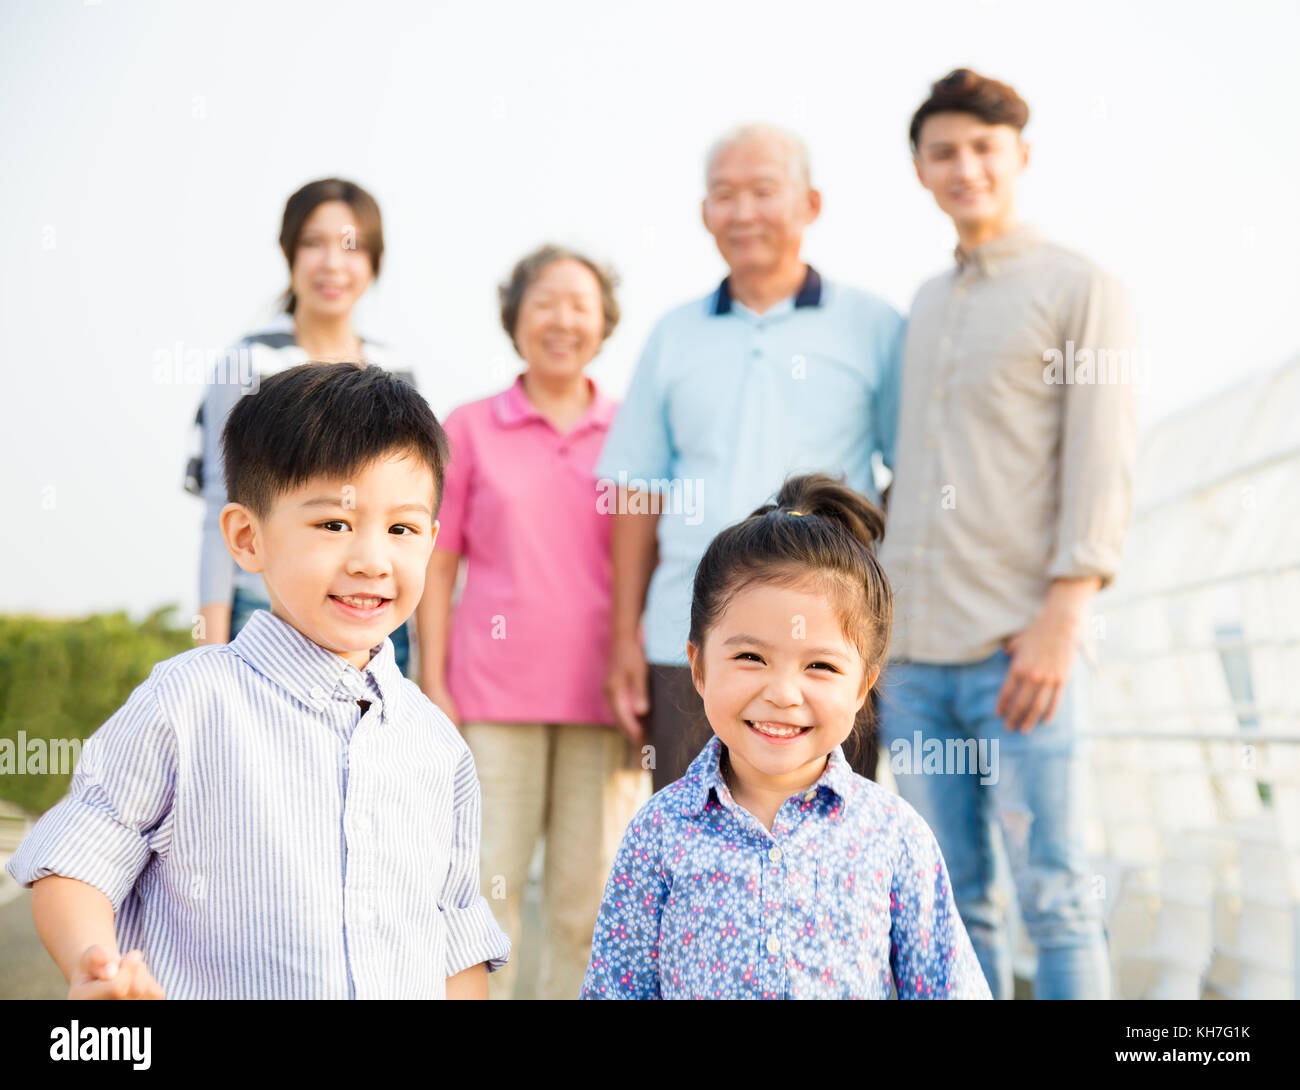 Multi-generation family having fun together outdoors Photo Stock